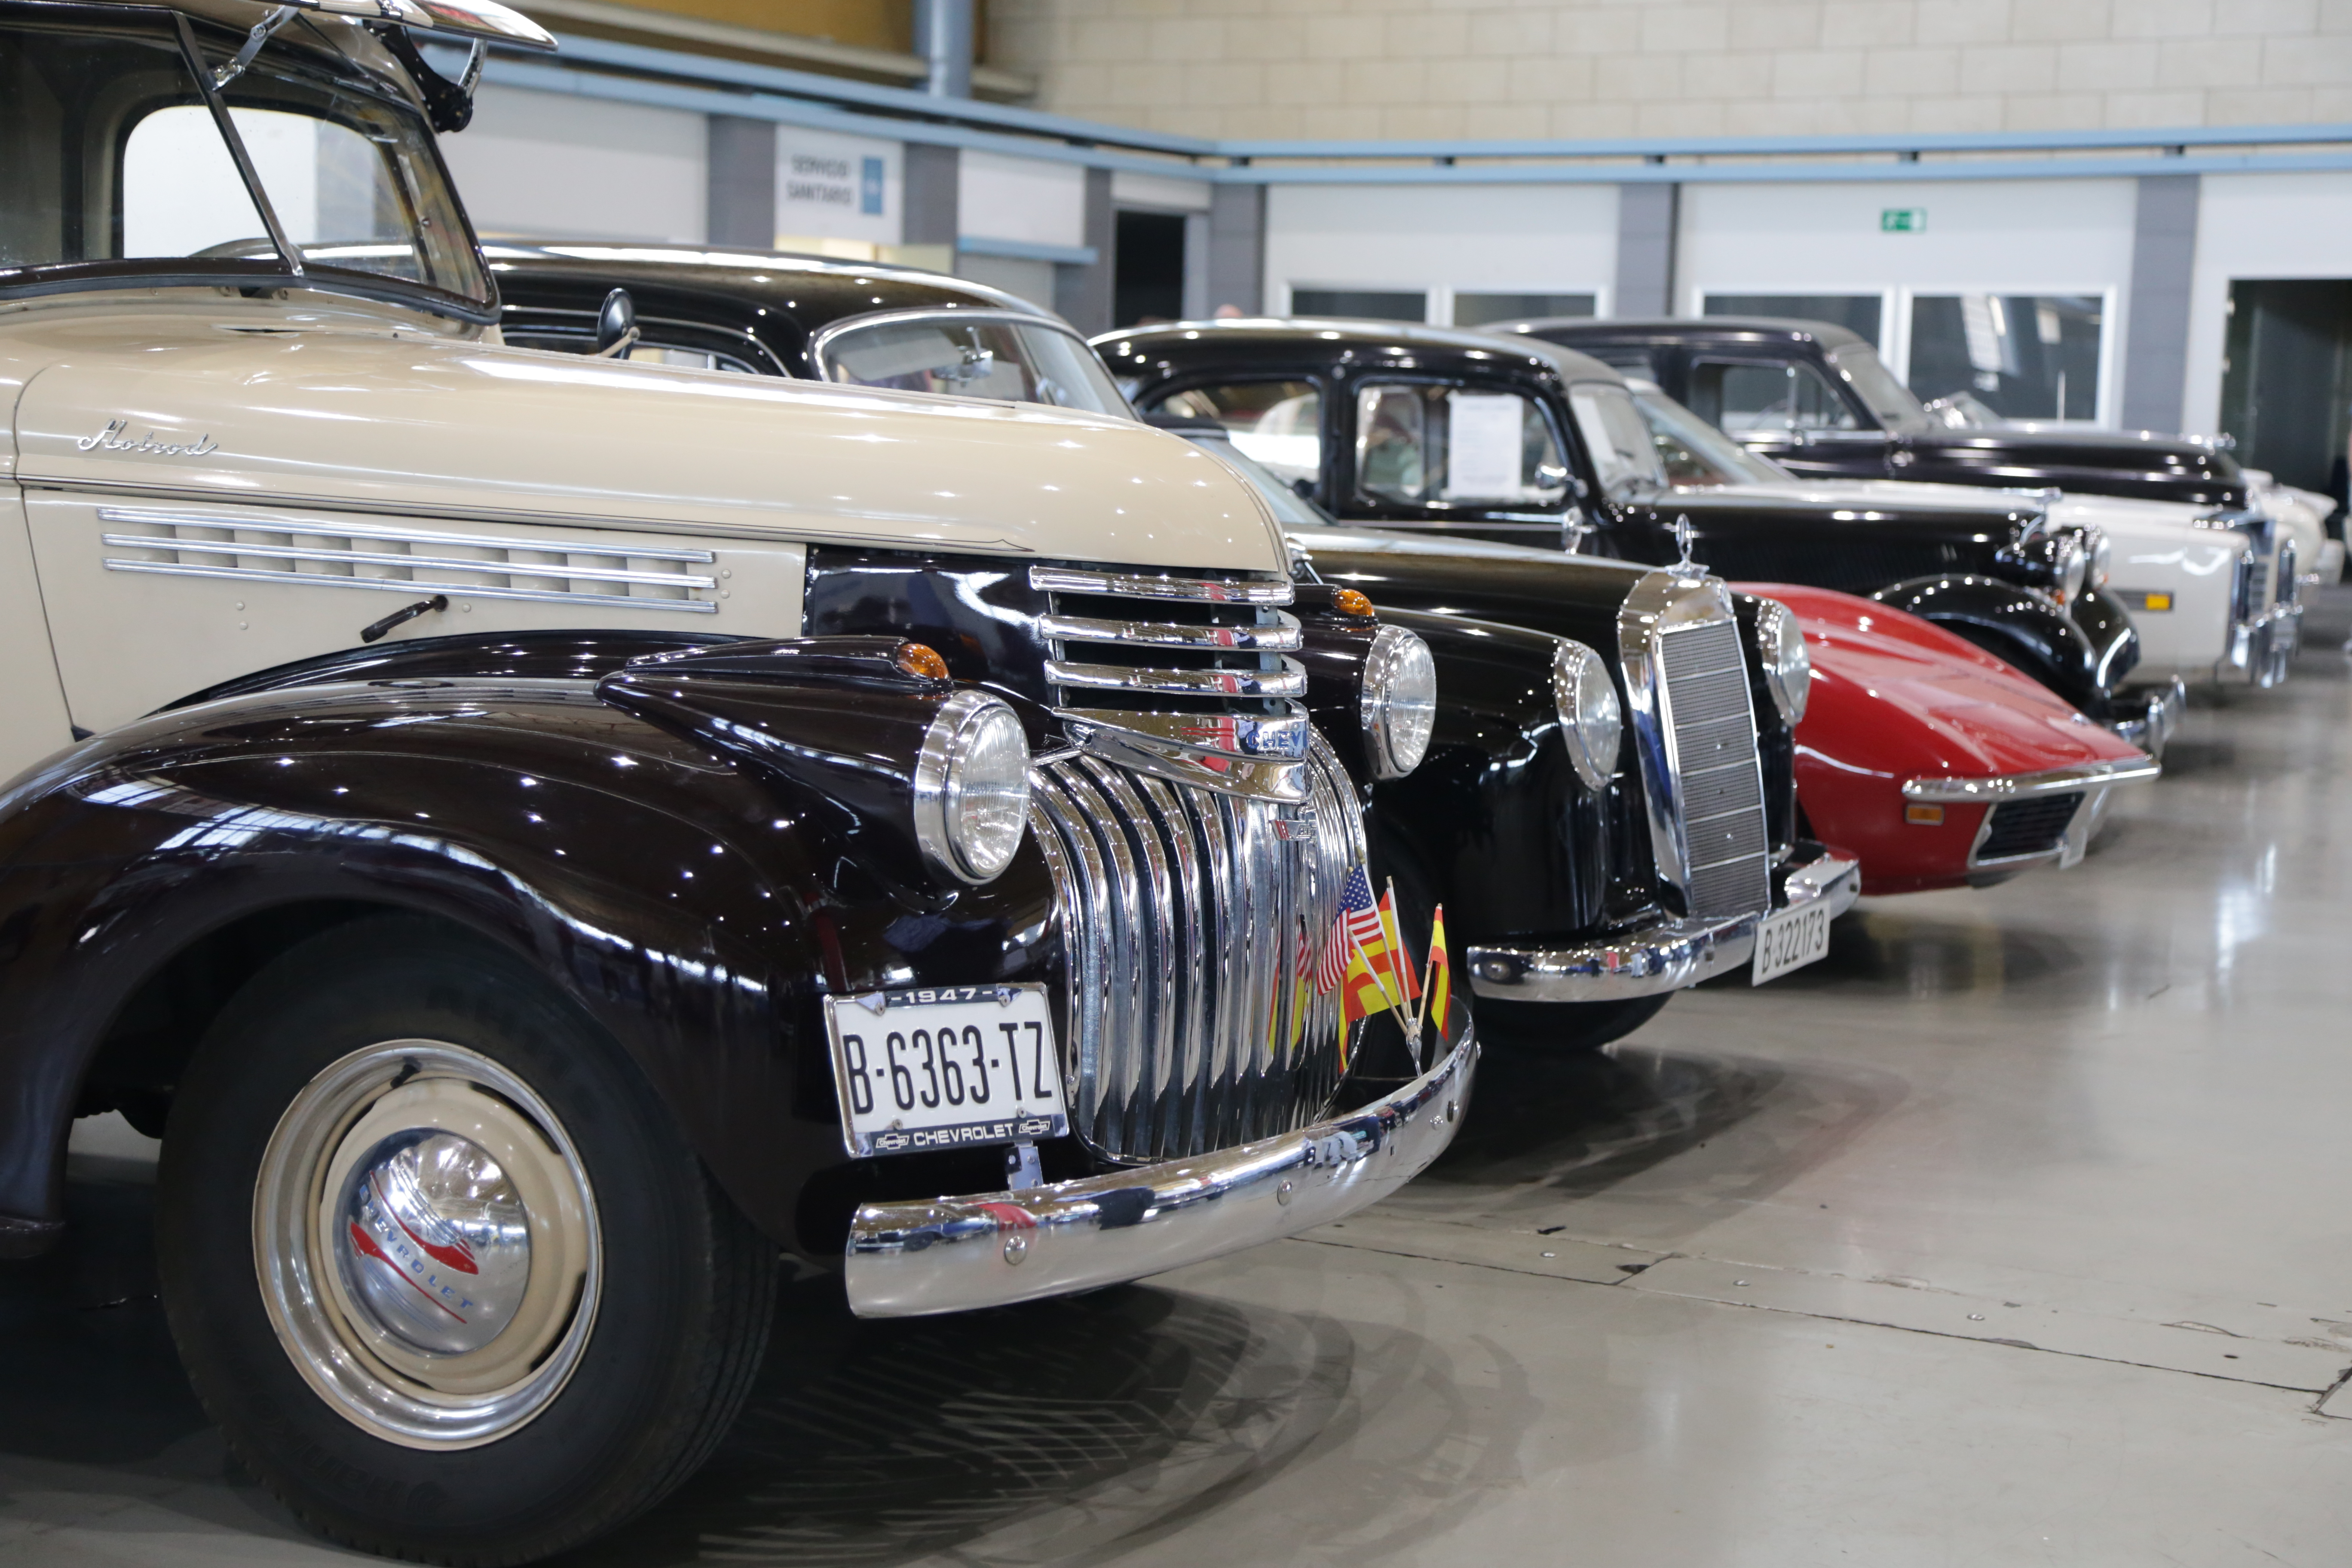 ALICANTE\'S LARGEST CLASSIC CAR AND BIKE SHOW - The Leader Newspaper